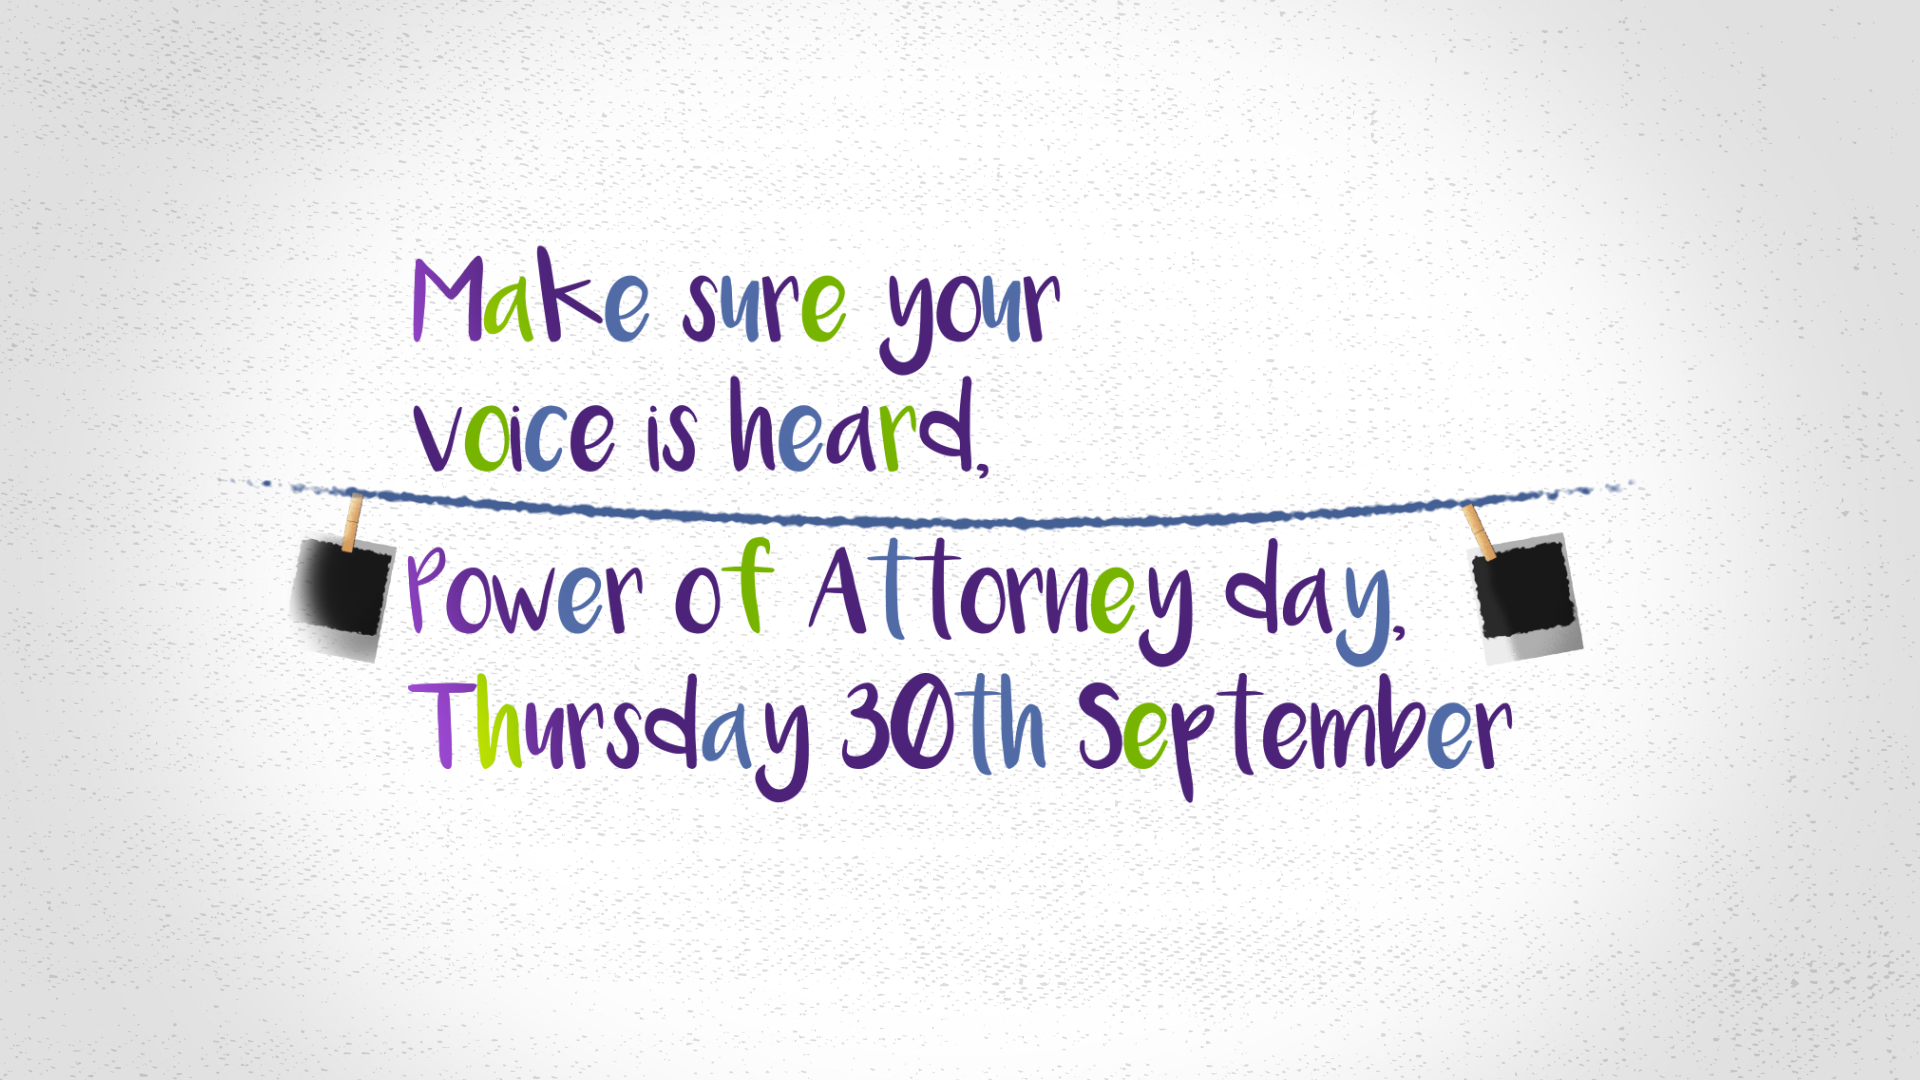 Multicolor text reading: Make sure your voice is heard. Power of Attorney Day, Thursday 30th September